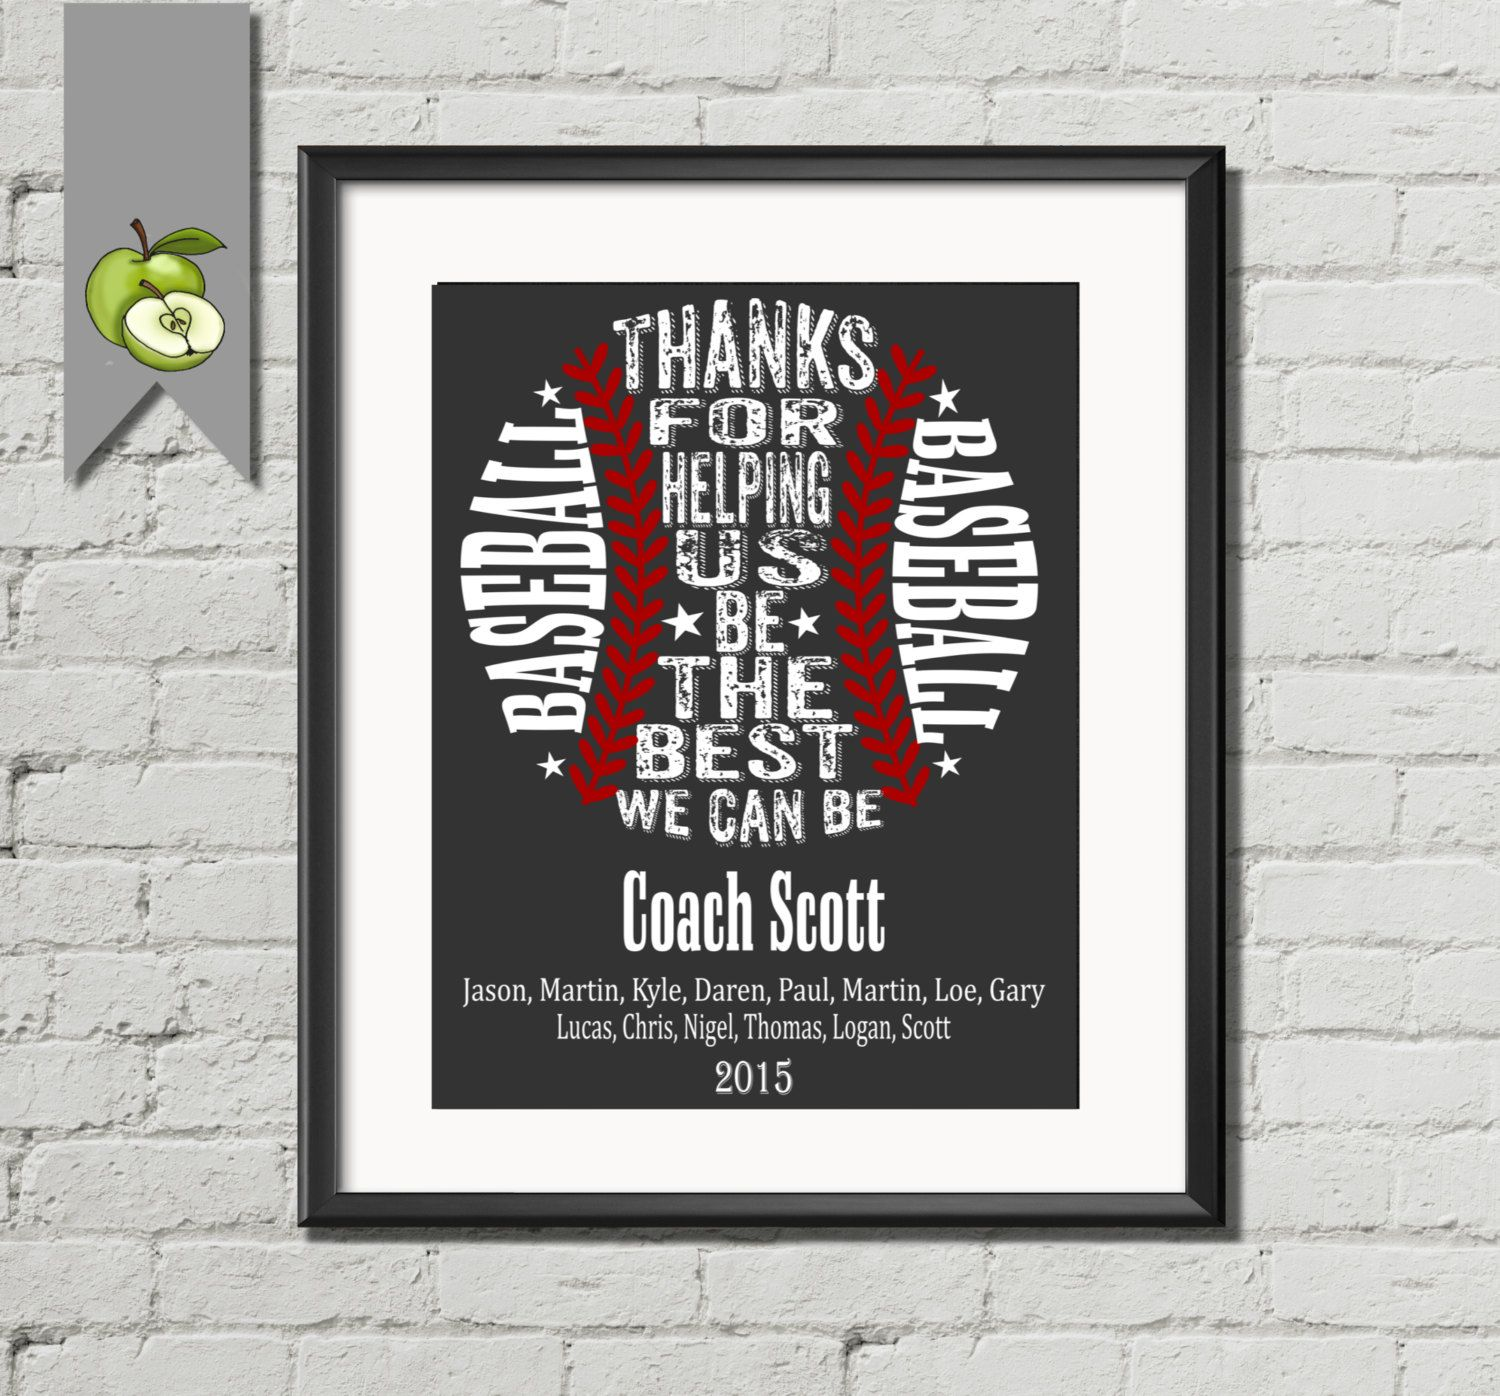 Baseball coach appreciation gift pe phyical by